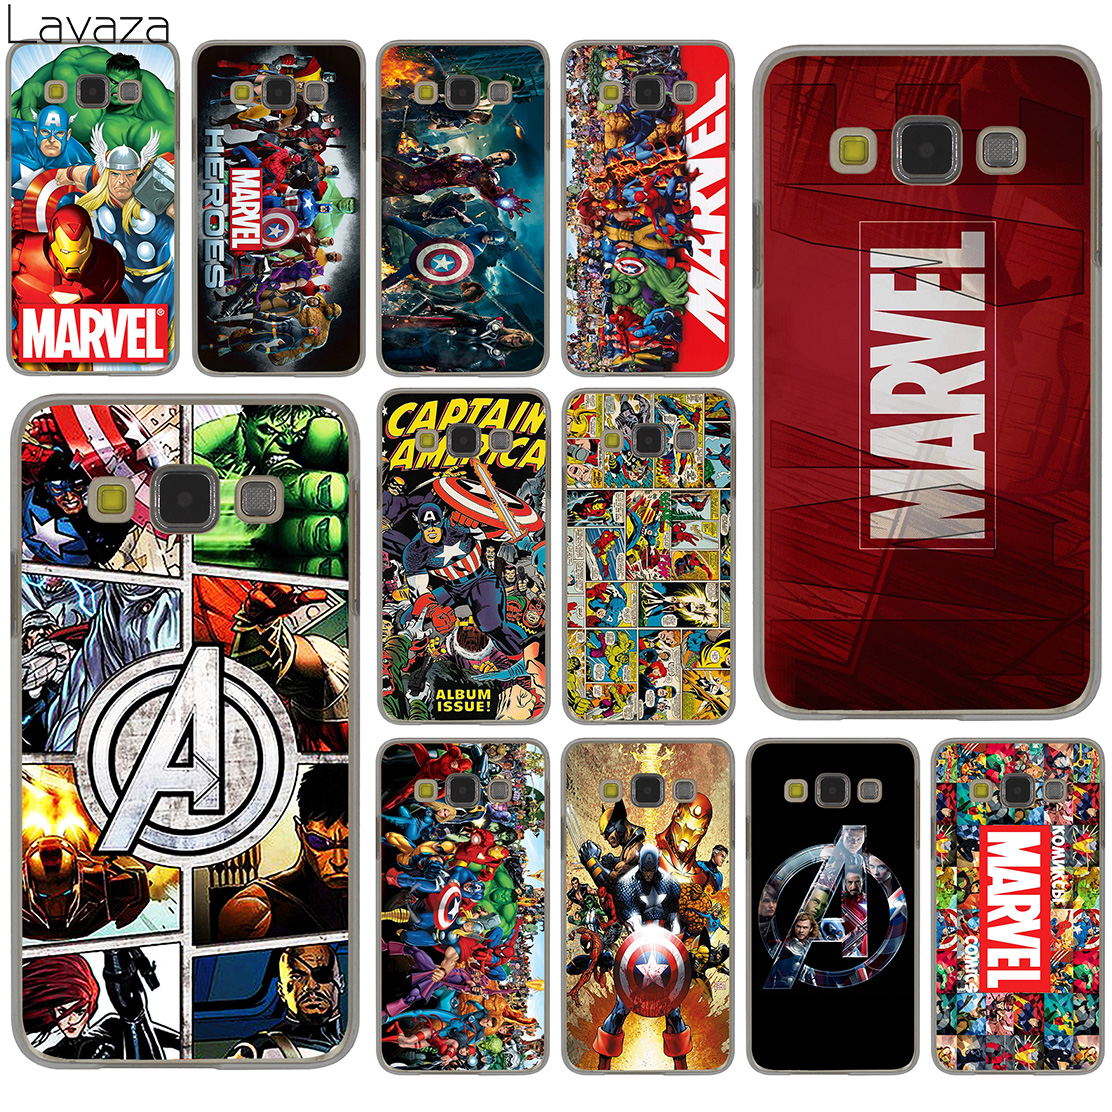 official photos db412 e79bc US $1.71 33% OFF|Lavaza Marvel Superheroes The Avengers Hard Case for  Samsung Galaxy S10 S10E S8 Plus S6 S7 Edge S9 Plus Phone Cover-in  Half-wrapped ...